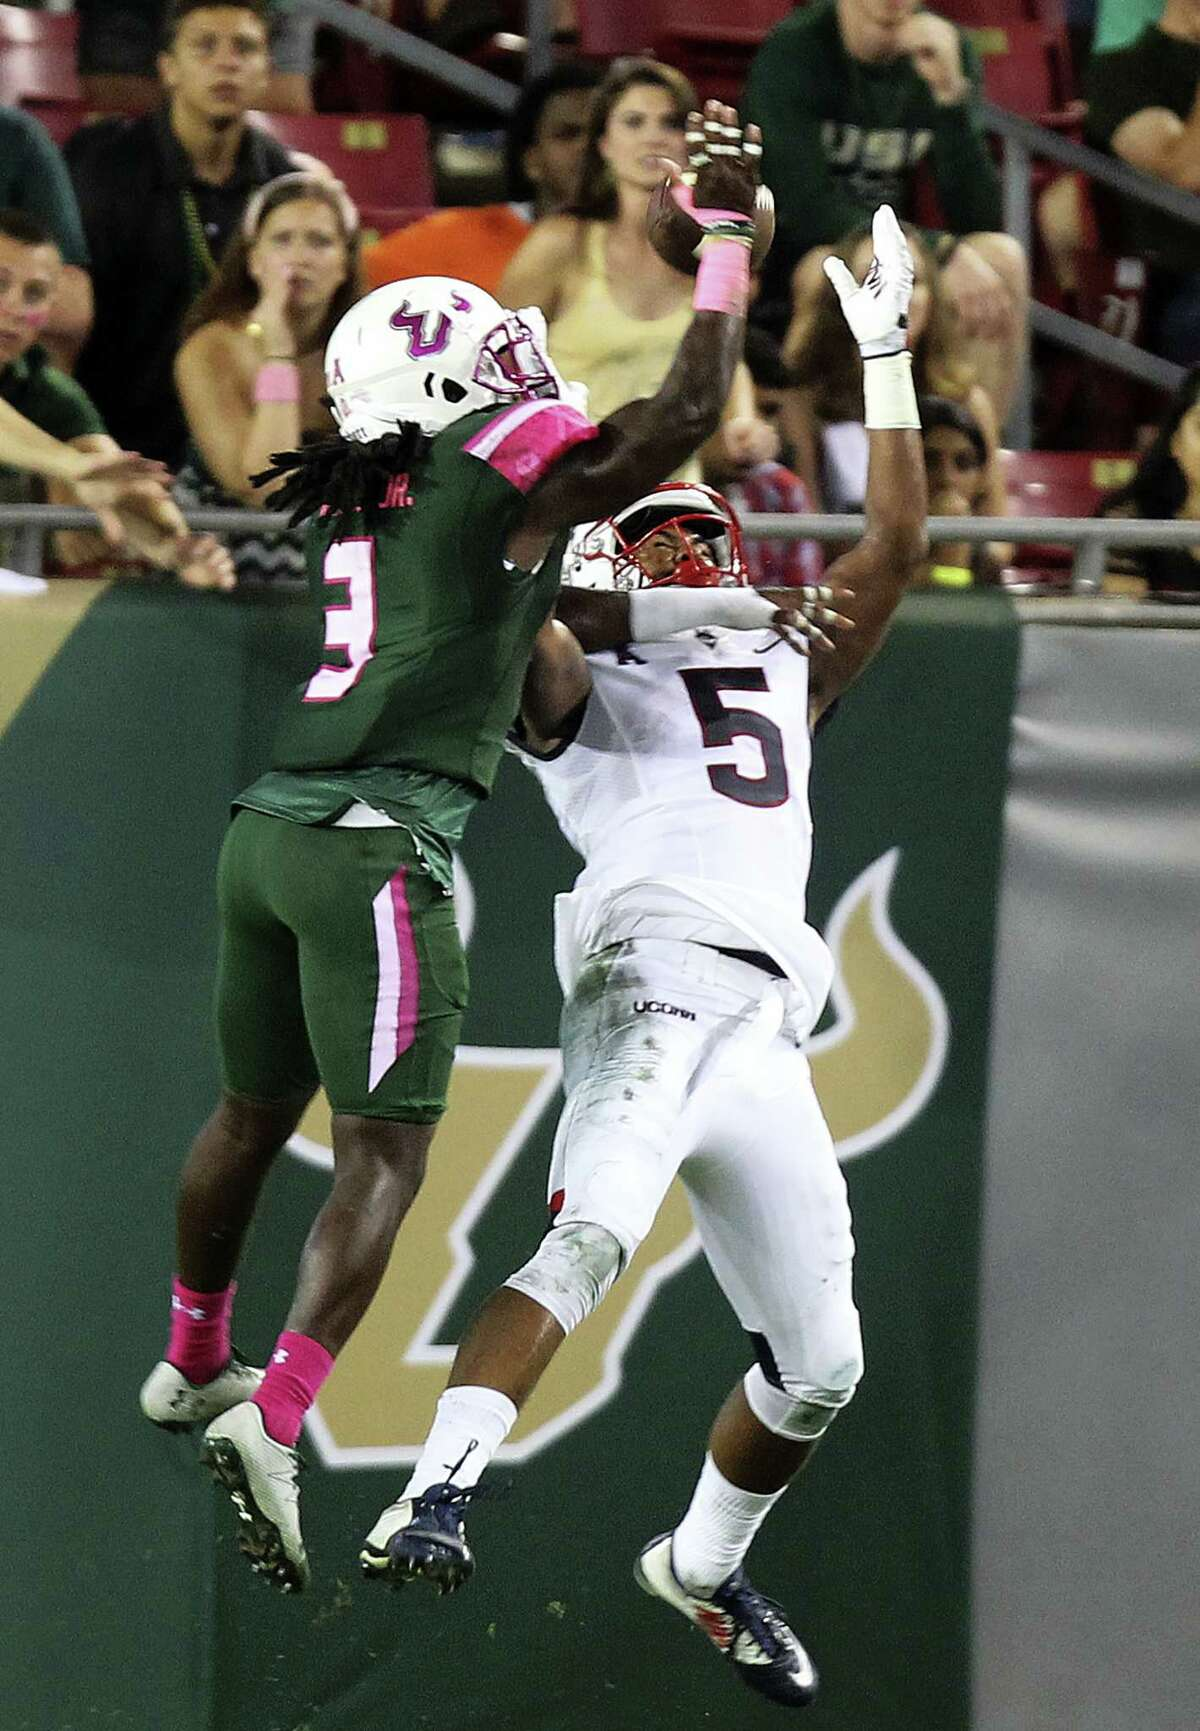 UConn receiver Noel Thomas (5) tries to make a catch against South Florida earlier this season.